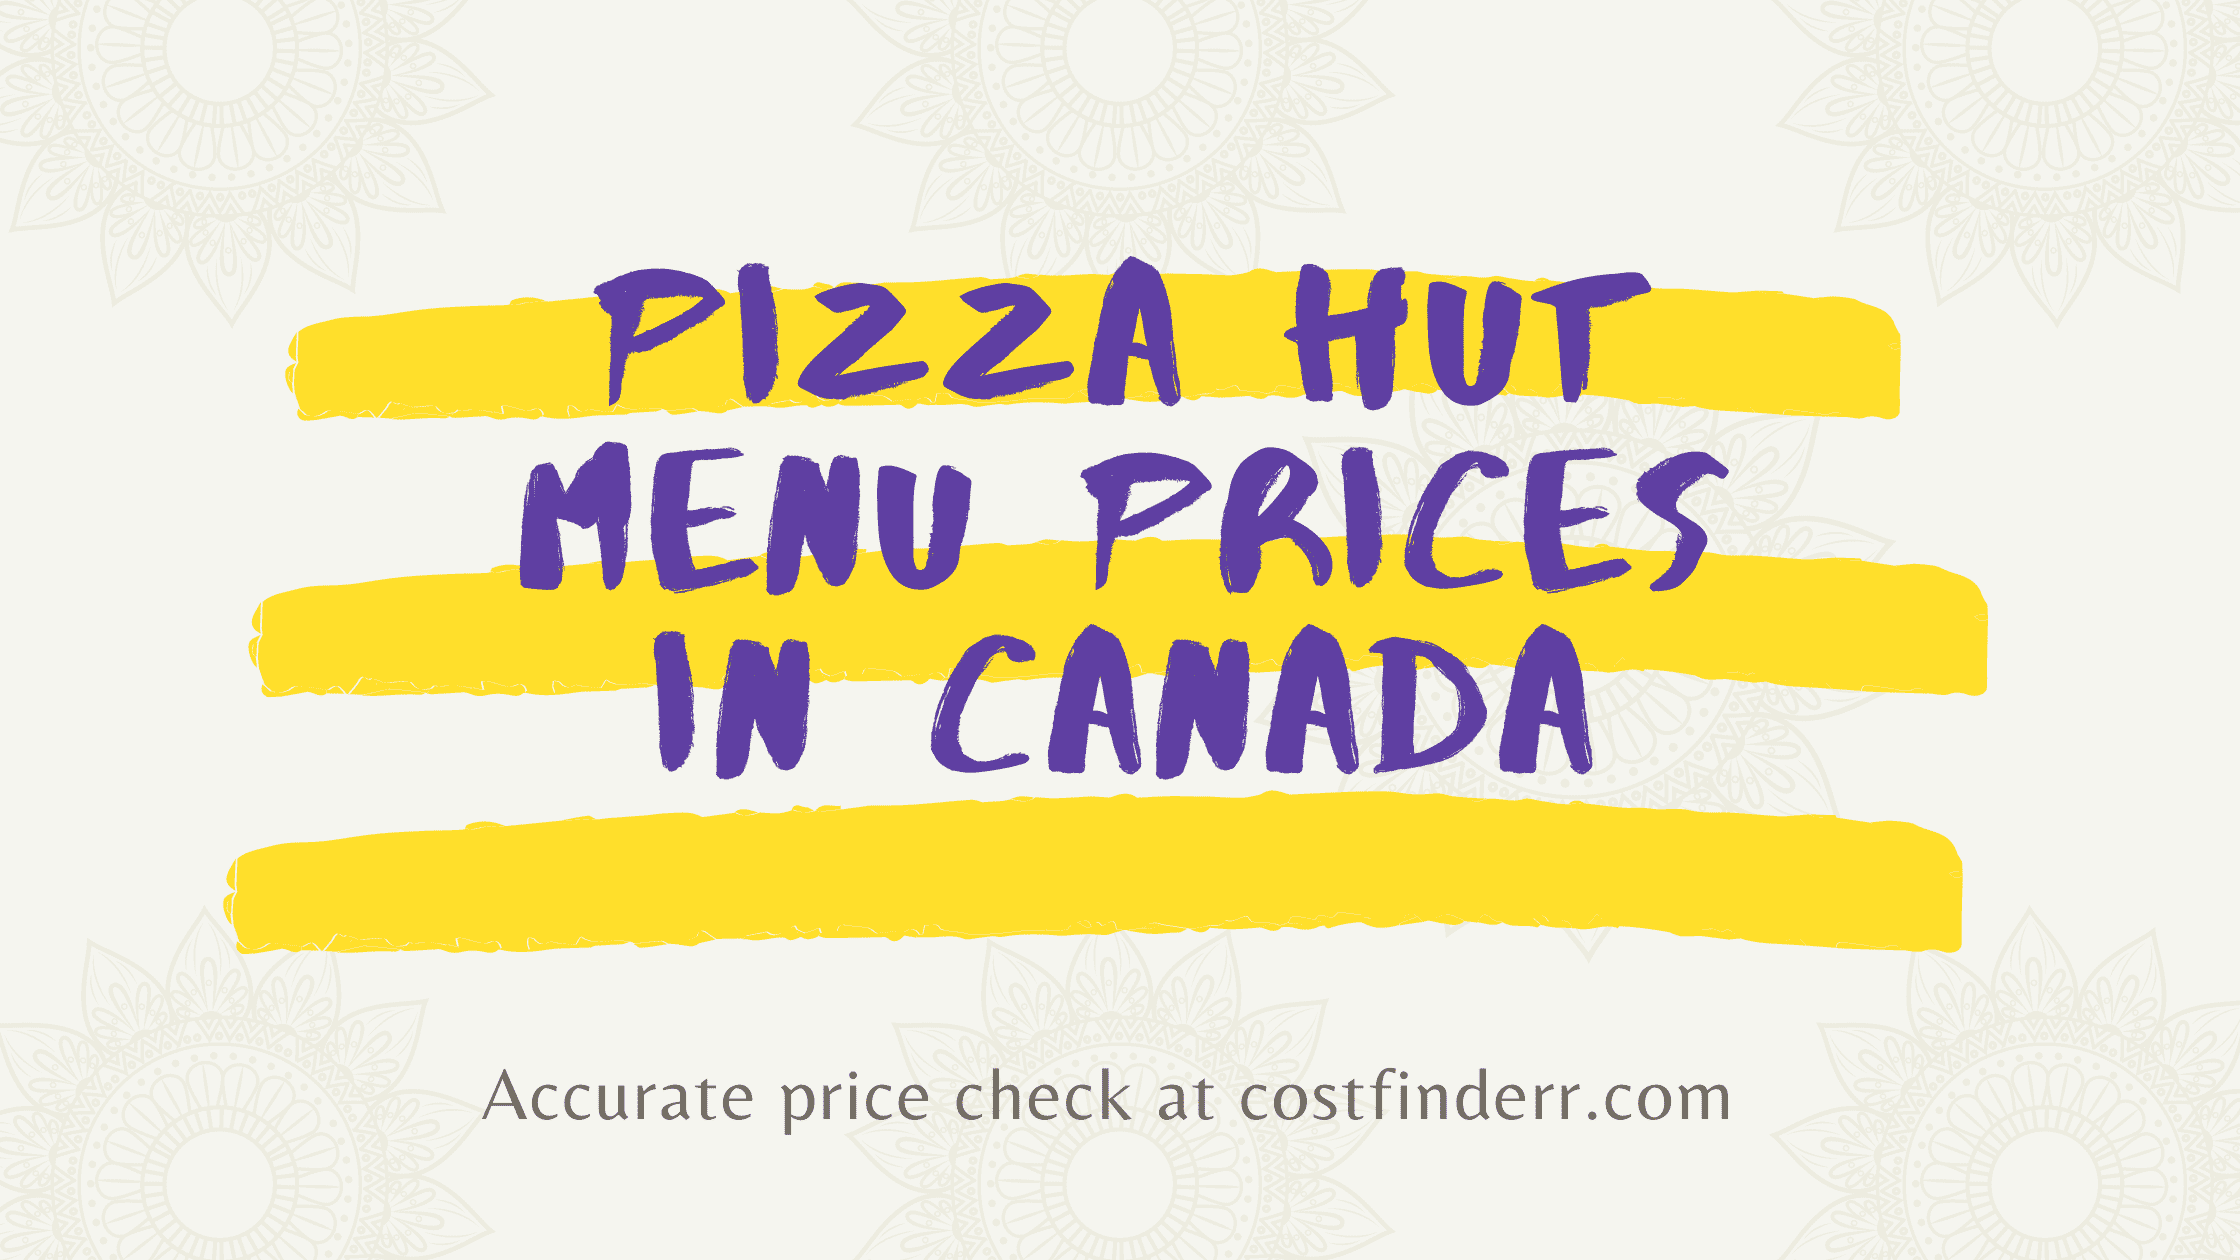 pizza hut menu prices in canada